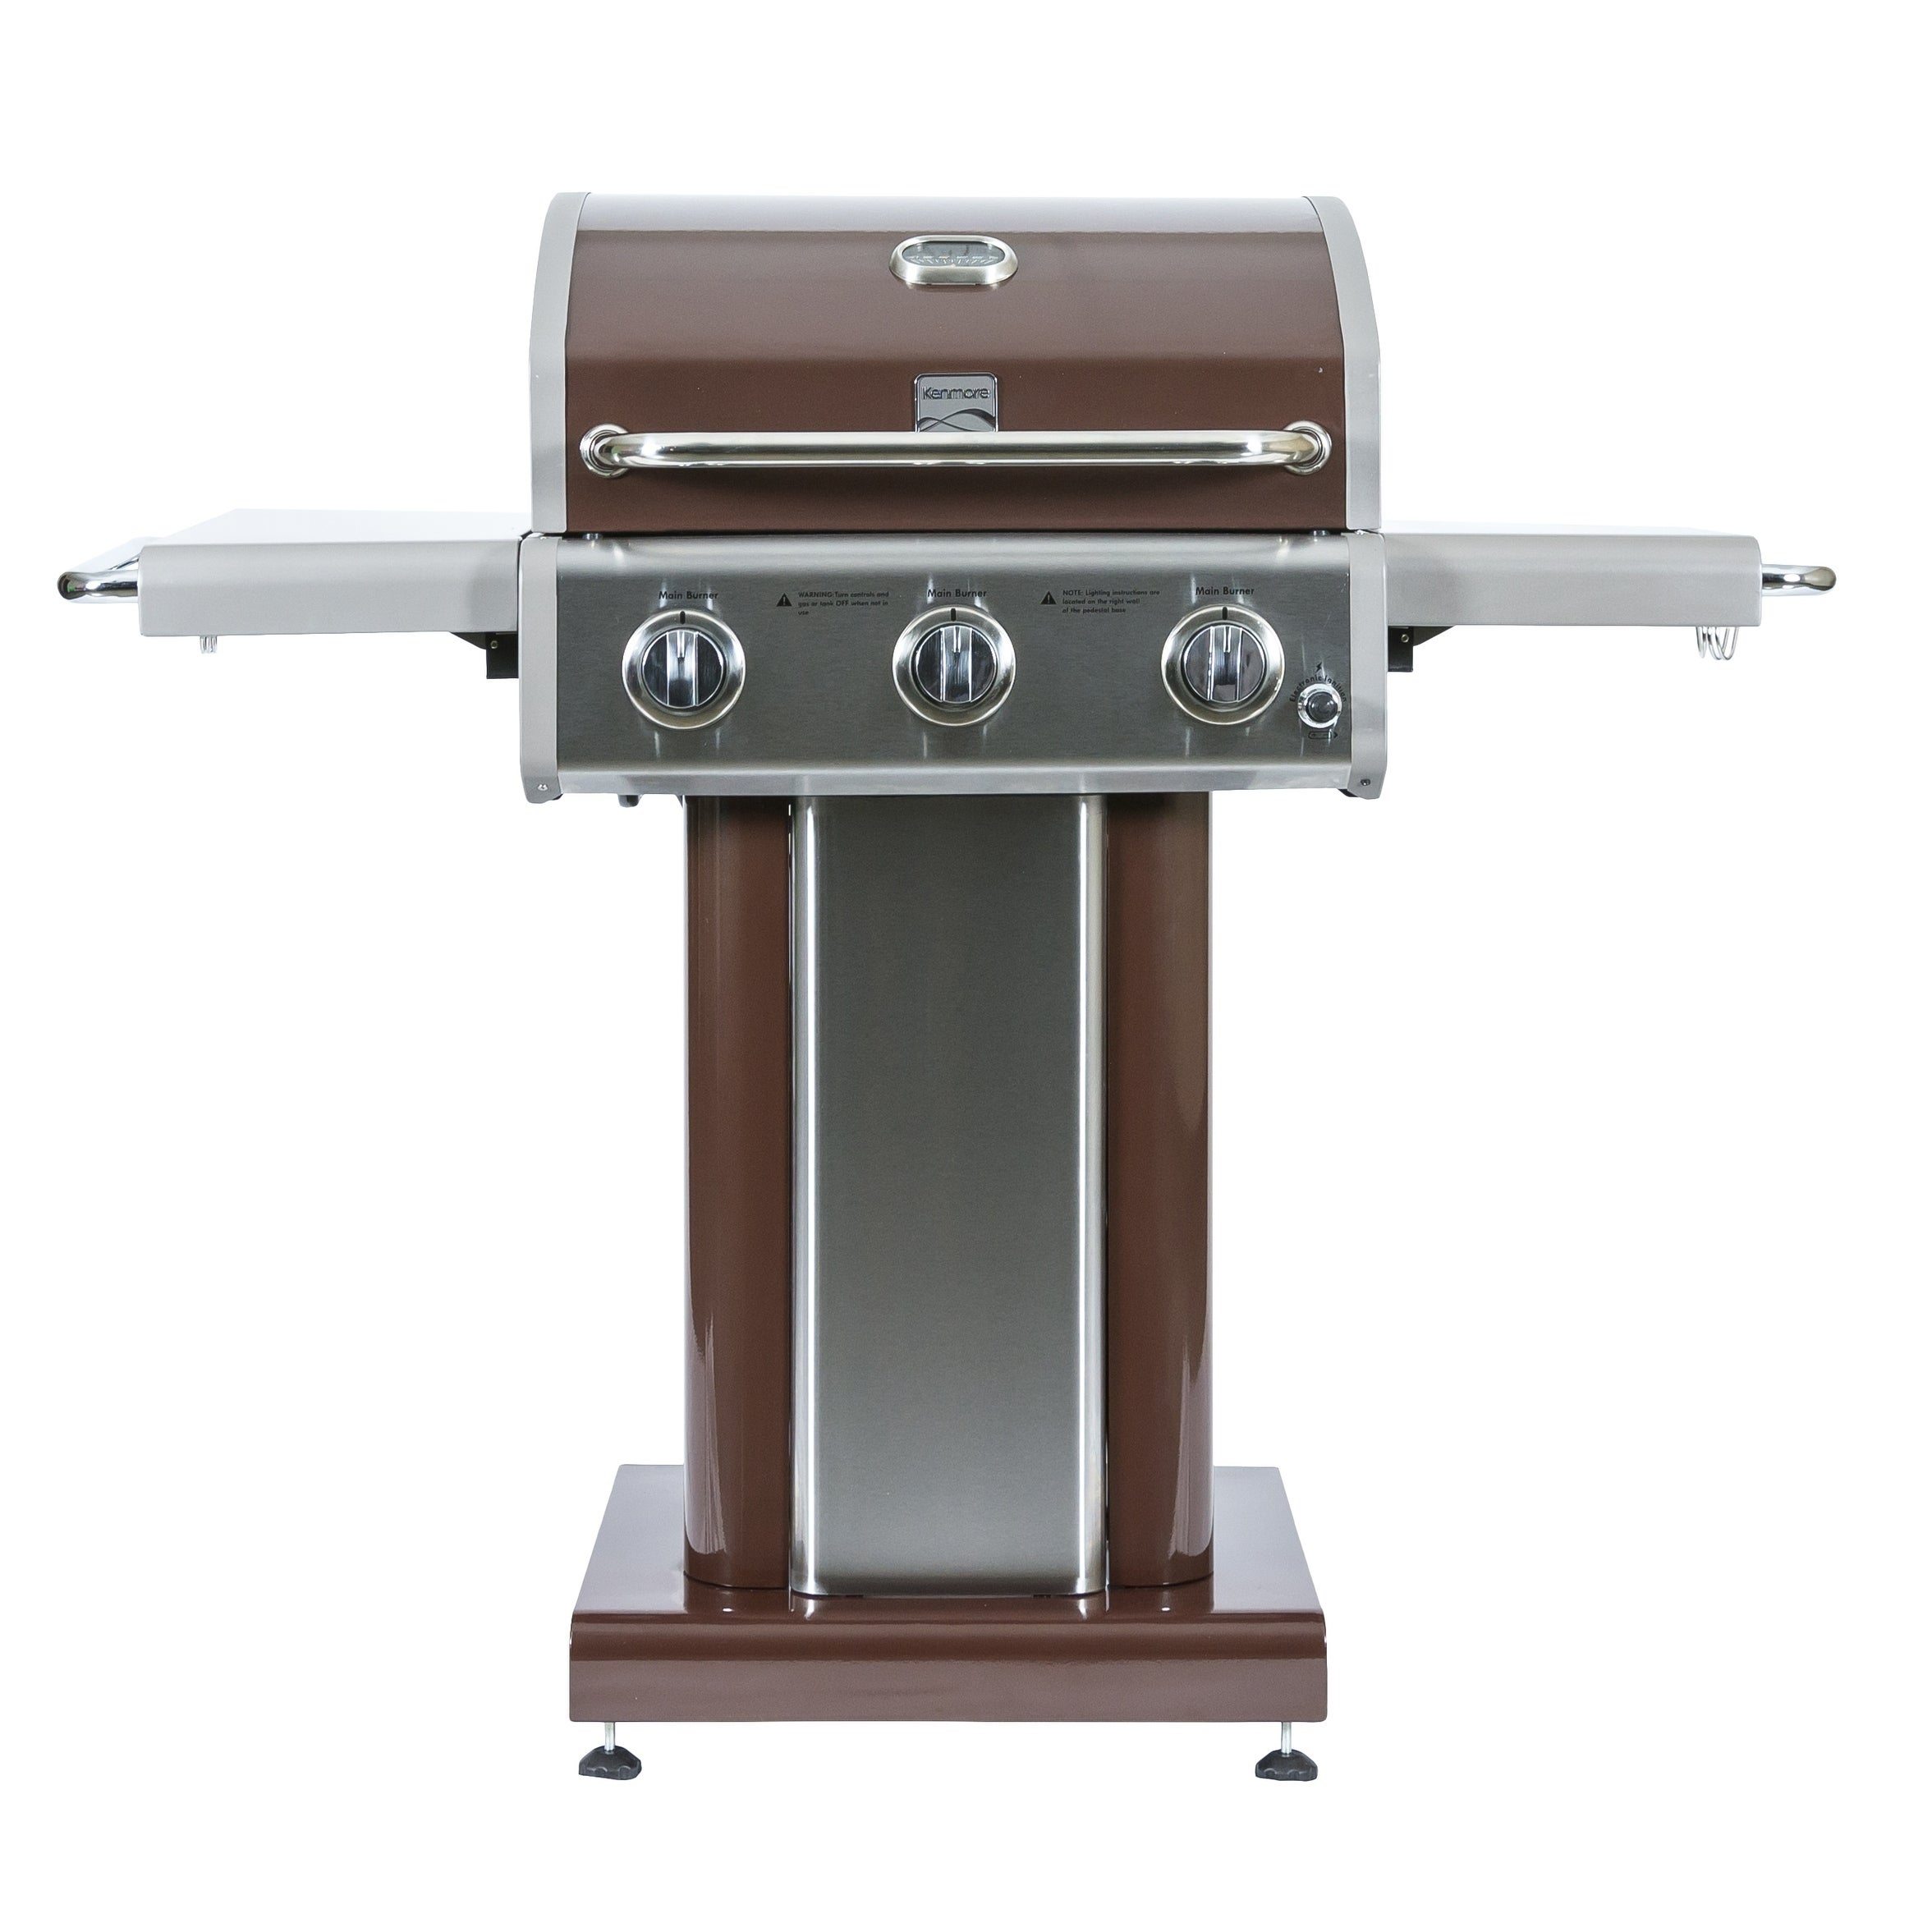 traeger ic grills bbq smokers top and best pagespeed value pedestal grill bronson